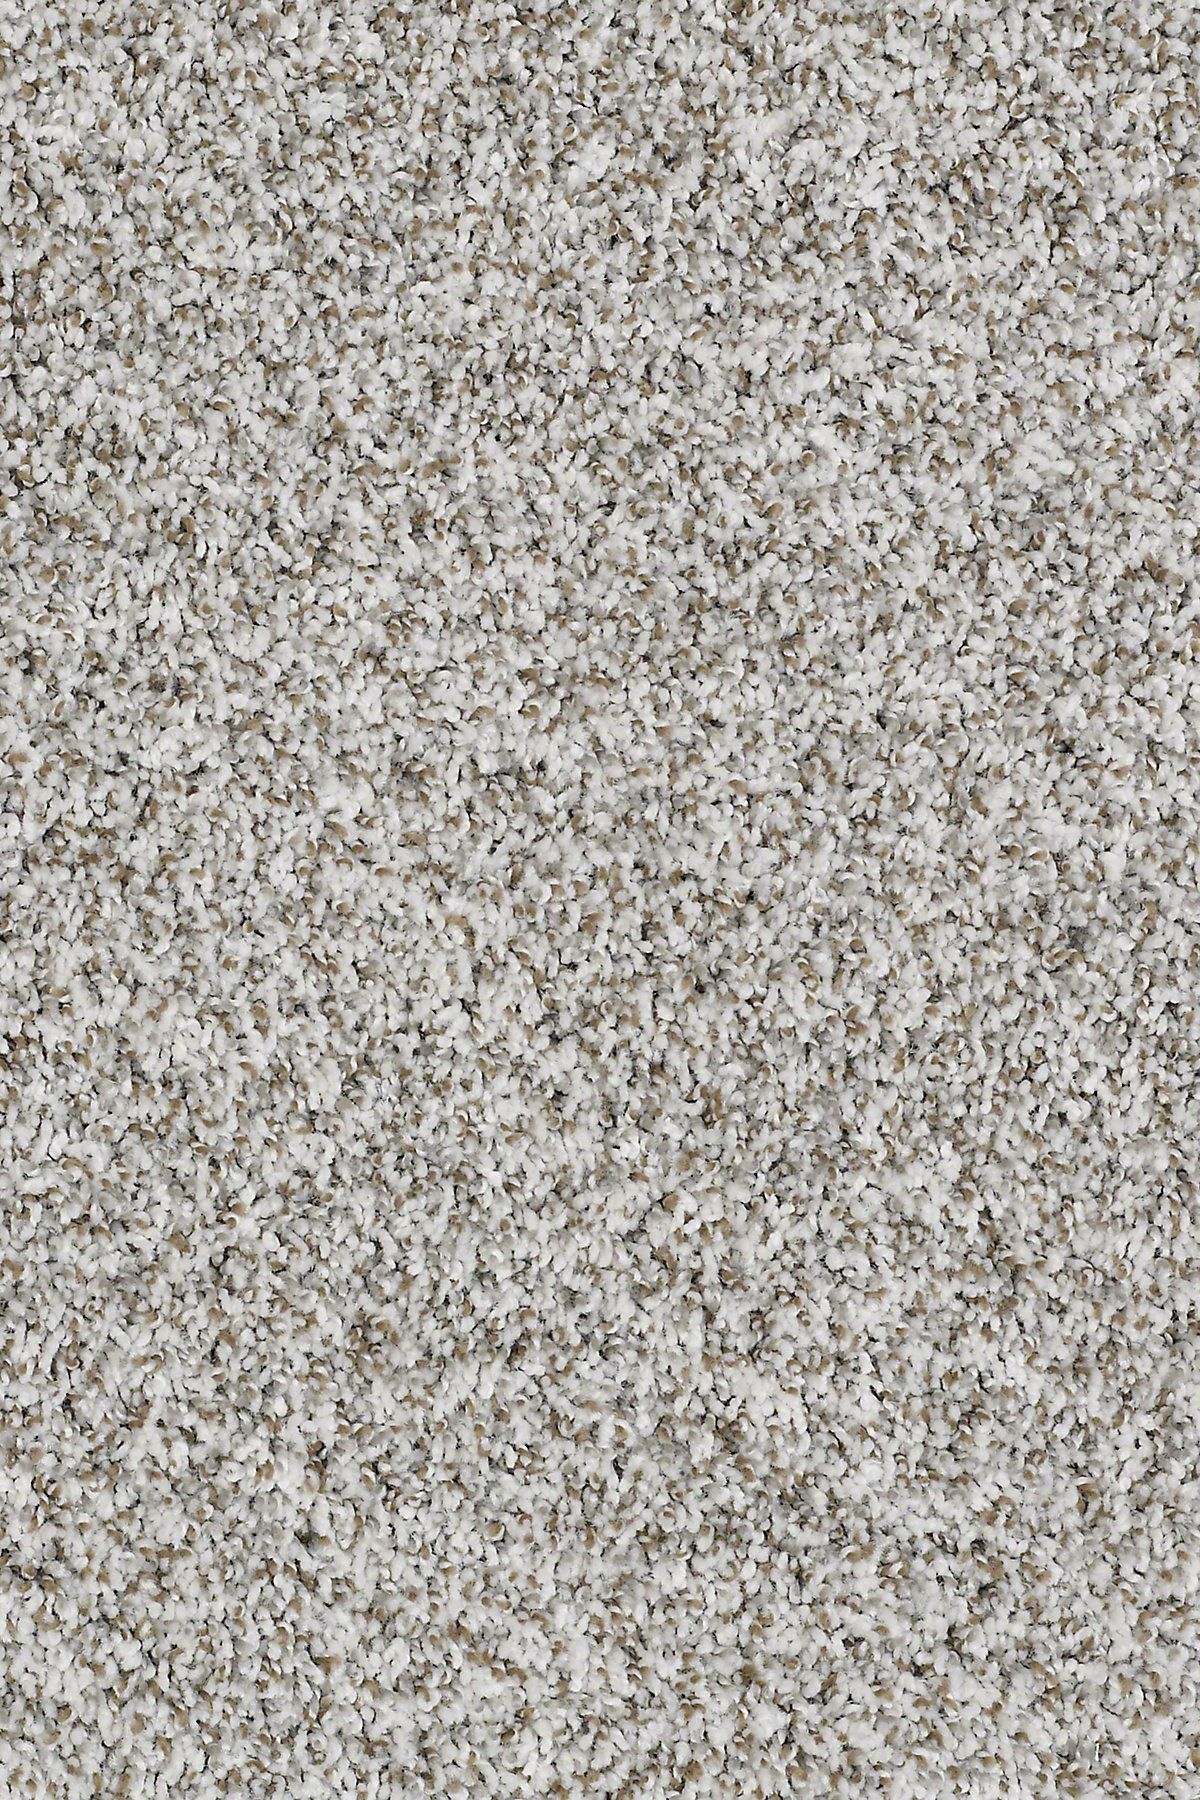 Inspire Me T E0693 Oatmeal Carpet Carpeting Berber Texture More In 2020 Shaw Carpet Bedroom Carpet Colors Carpet Samples